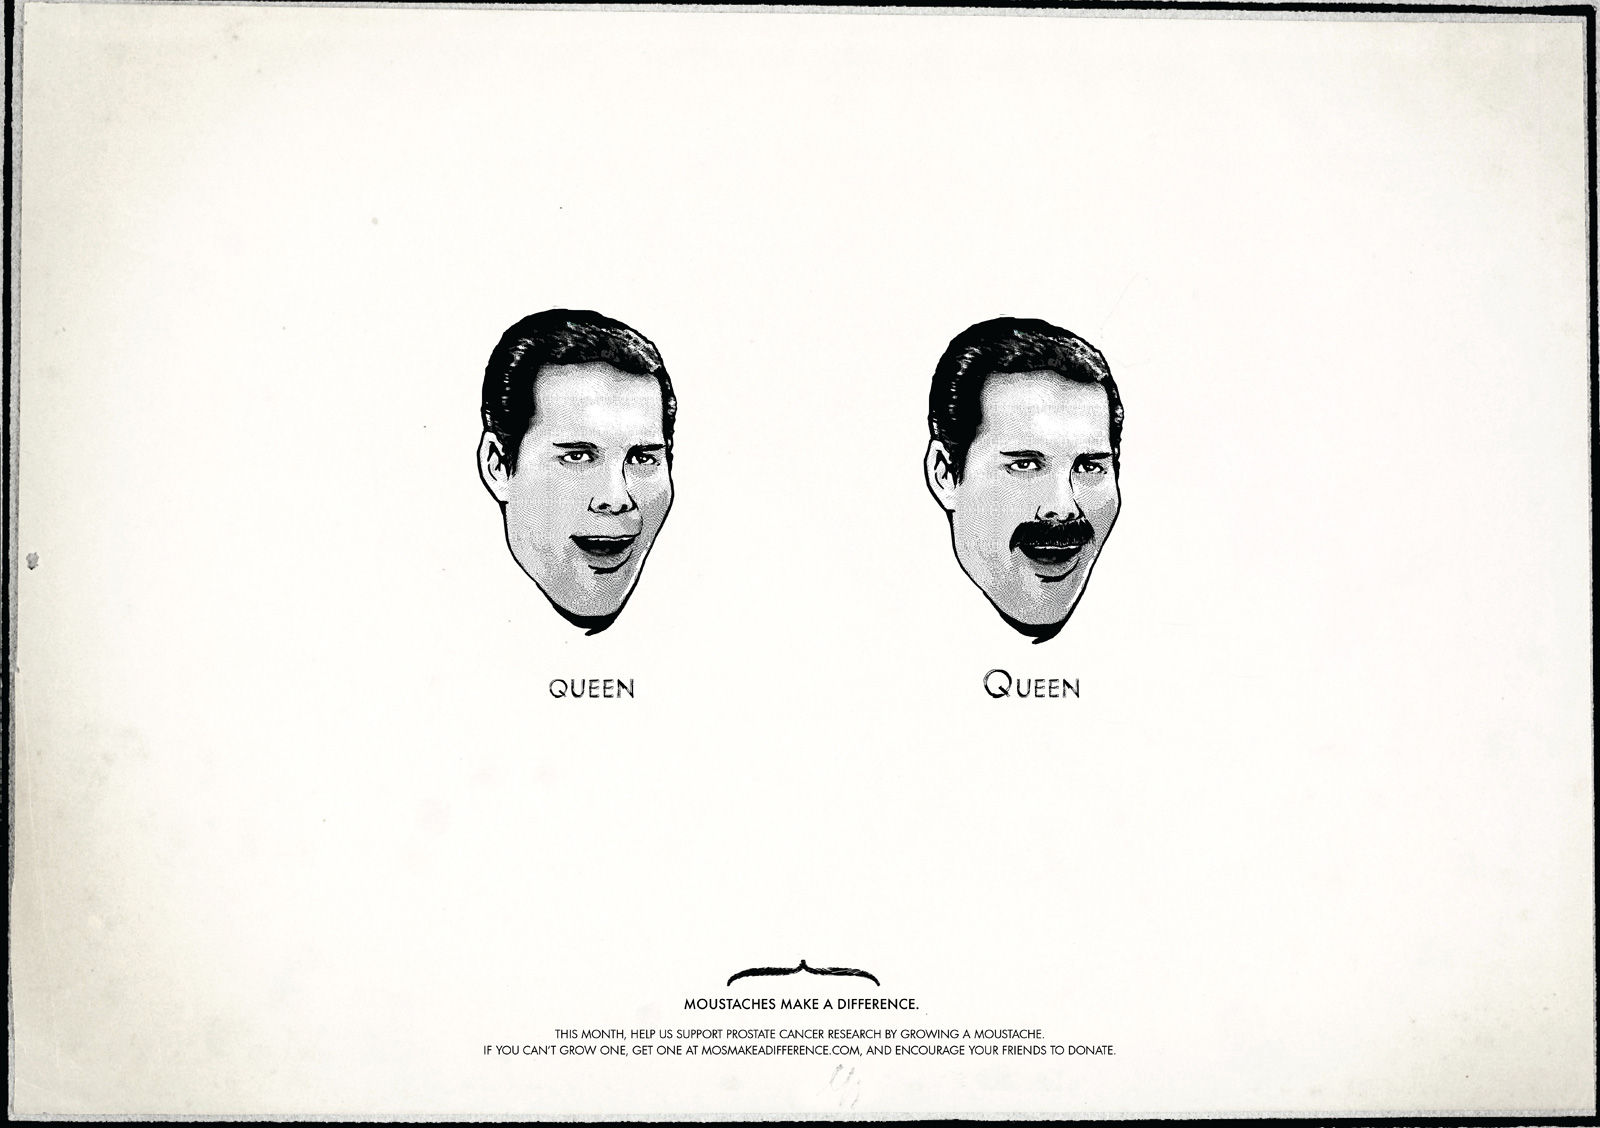 Moustaches-Make-A-Difference-Freddie-Mercury-Queen